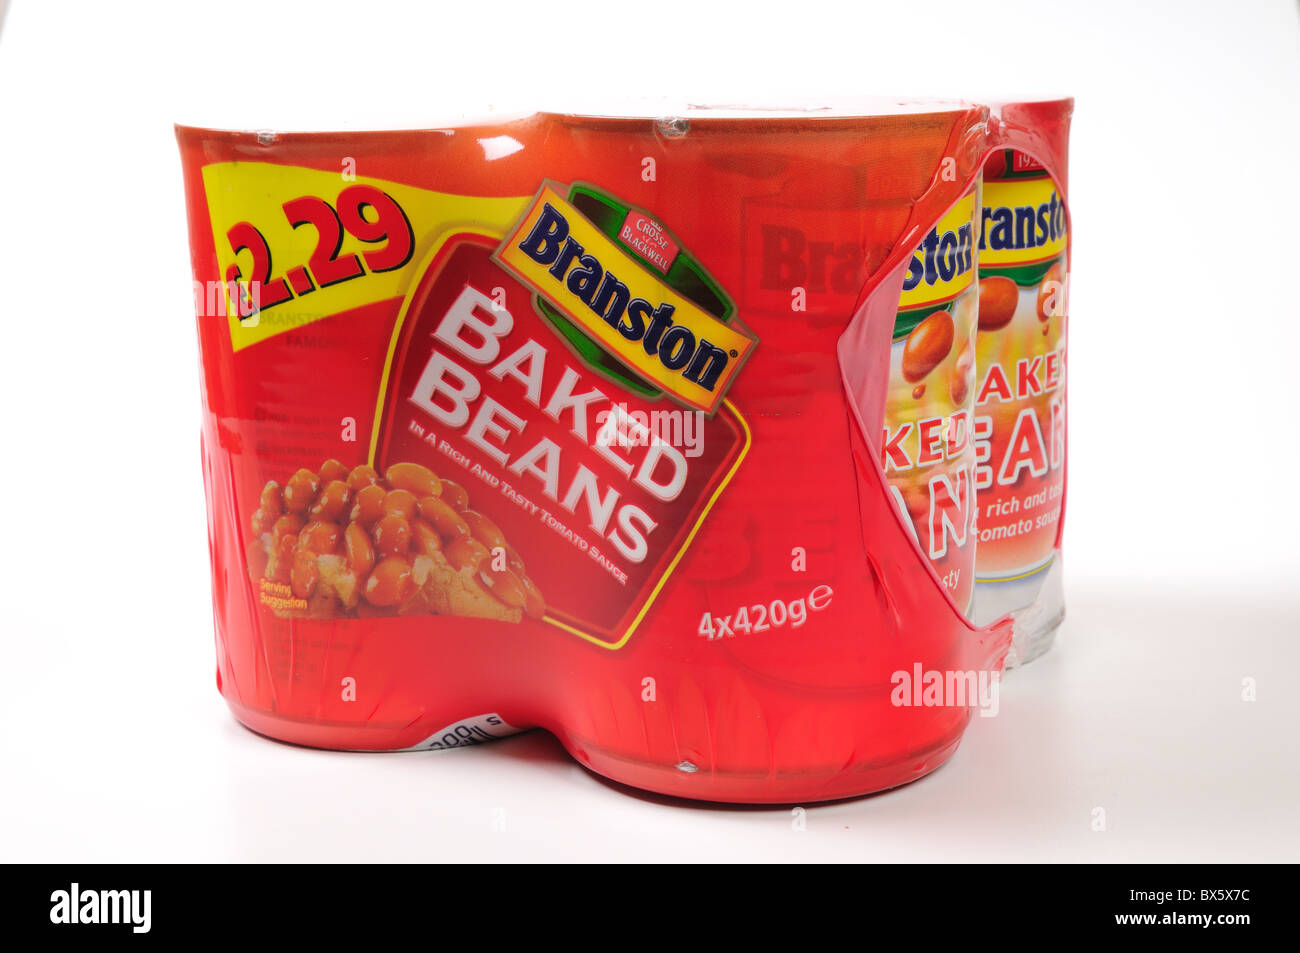 Baked Beans ''Branston'' 4 tins for £2.29 - Stock Image